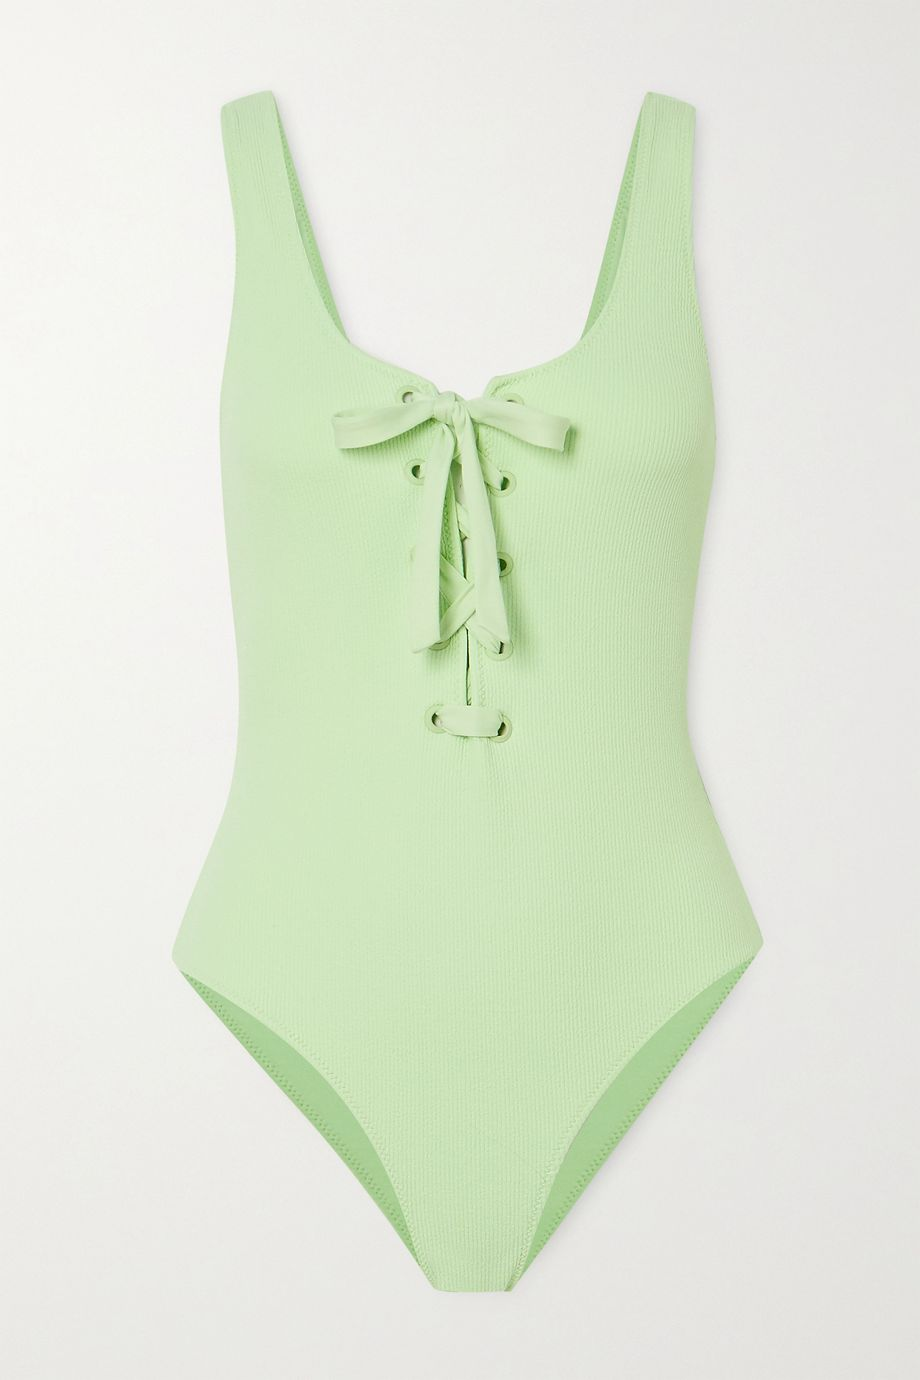 GANNI + NET SUSTAIN lace-up ribbed swimsuit